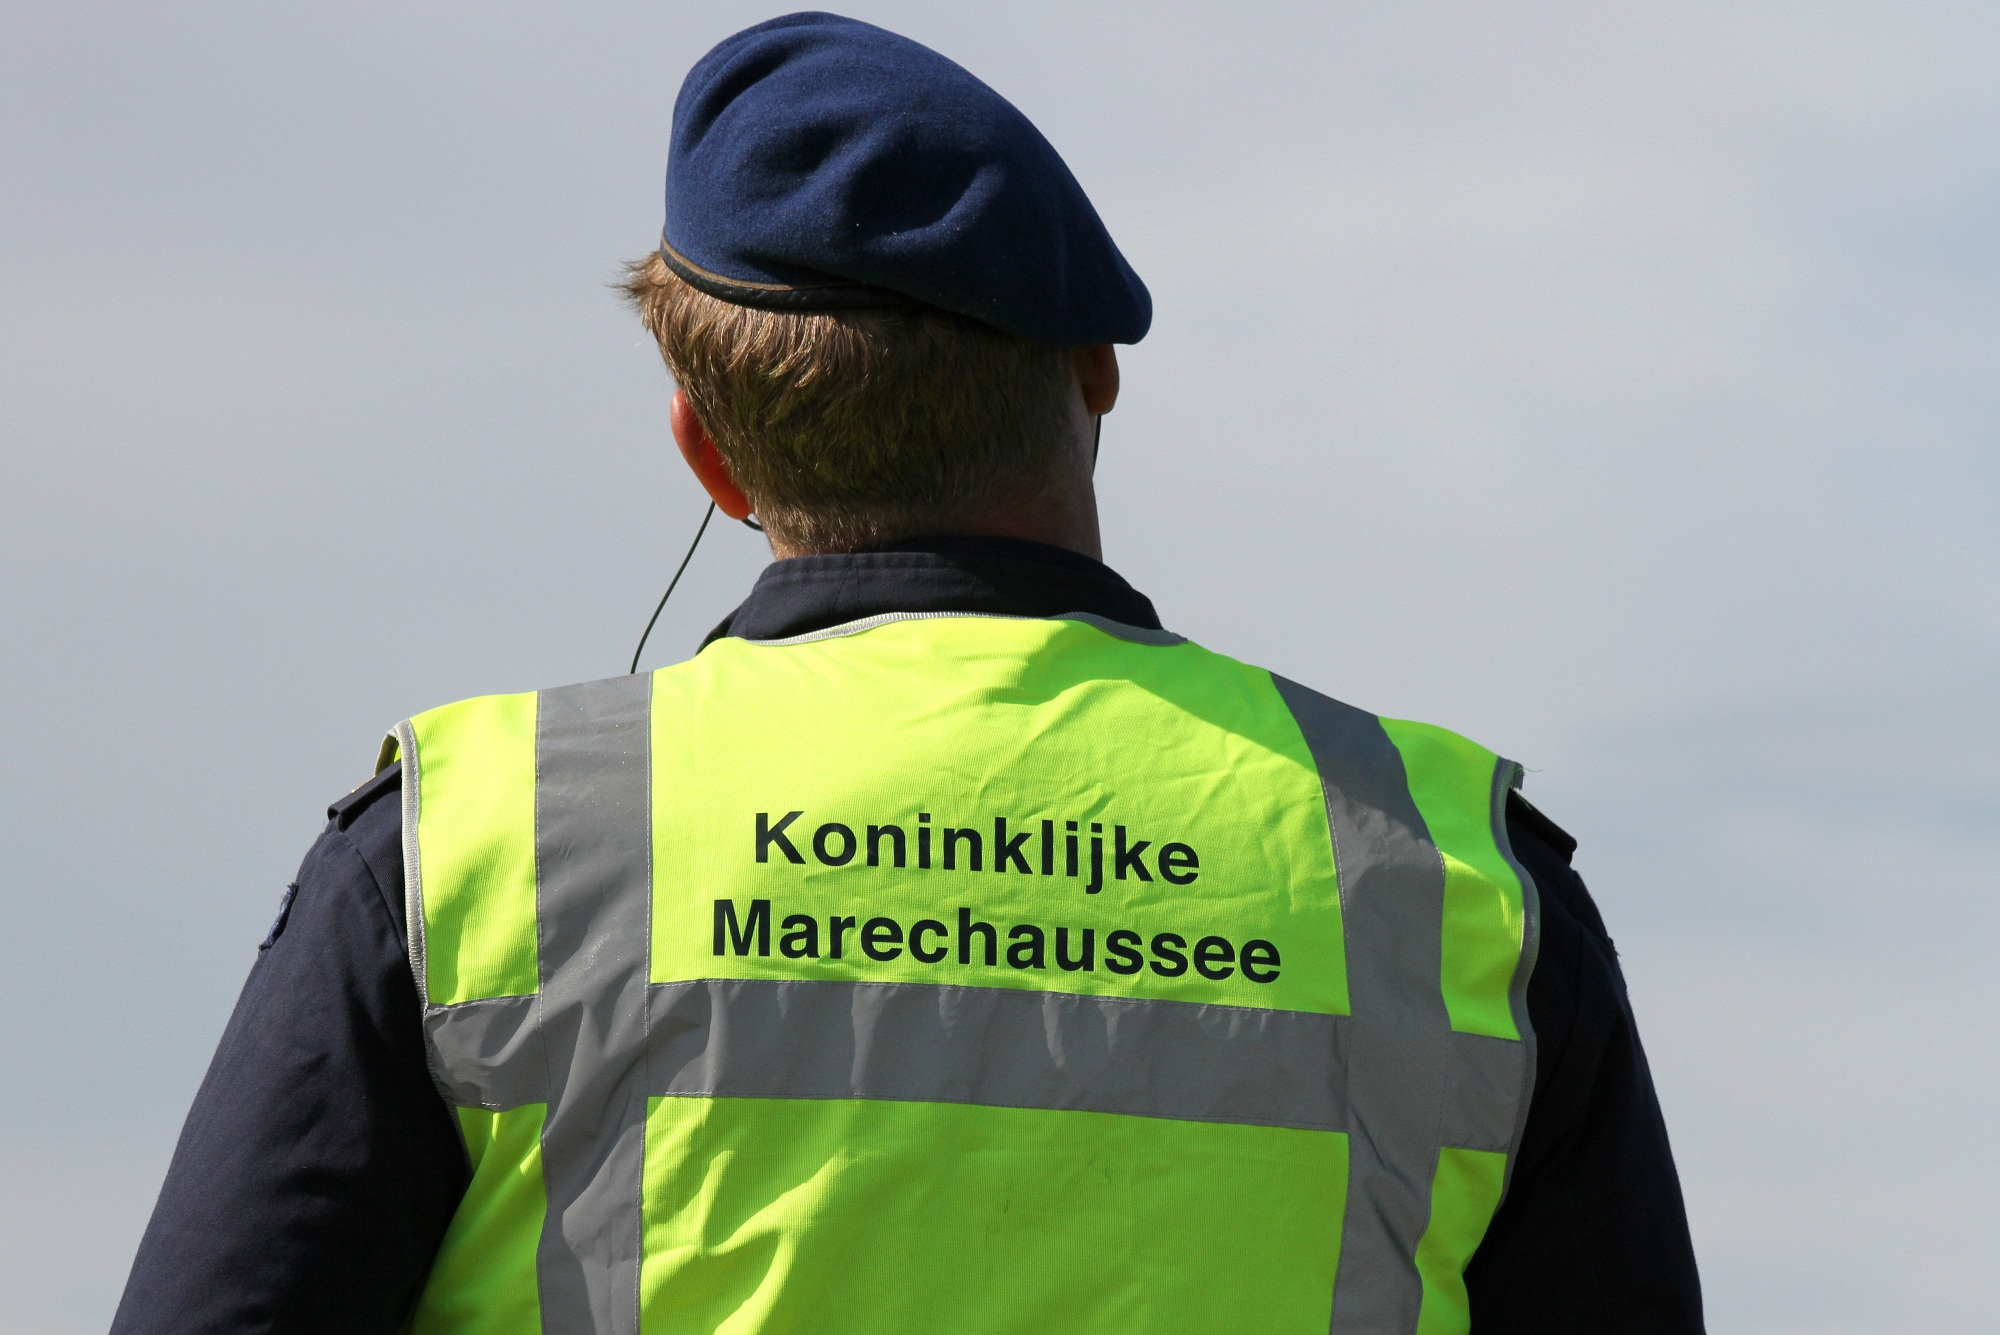 Koninklijke Marechaussee, Nederlandse Krijgsmacht, Defensie, KMar, bewaking, surveillance, beveiliging, security, handhaving, enforcement